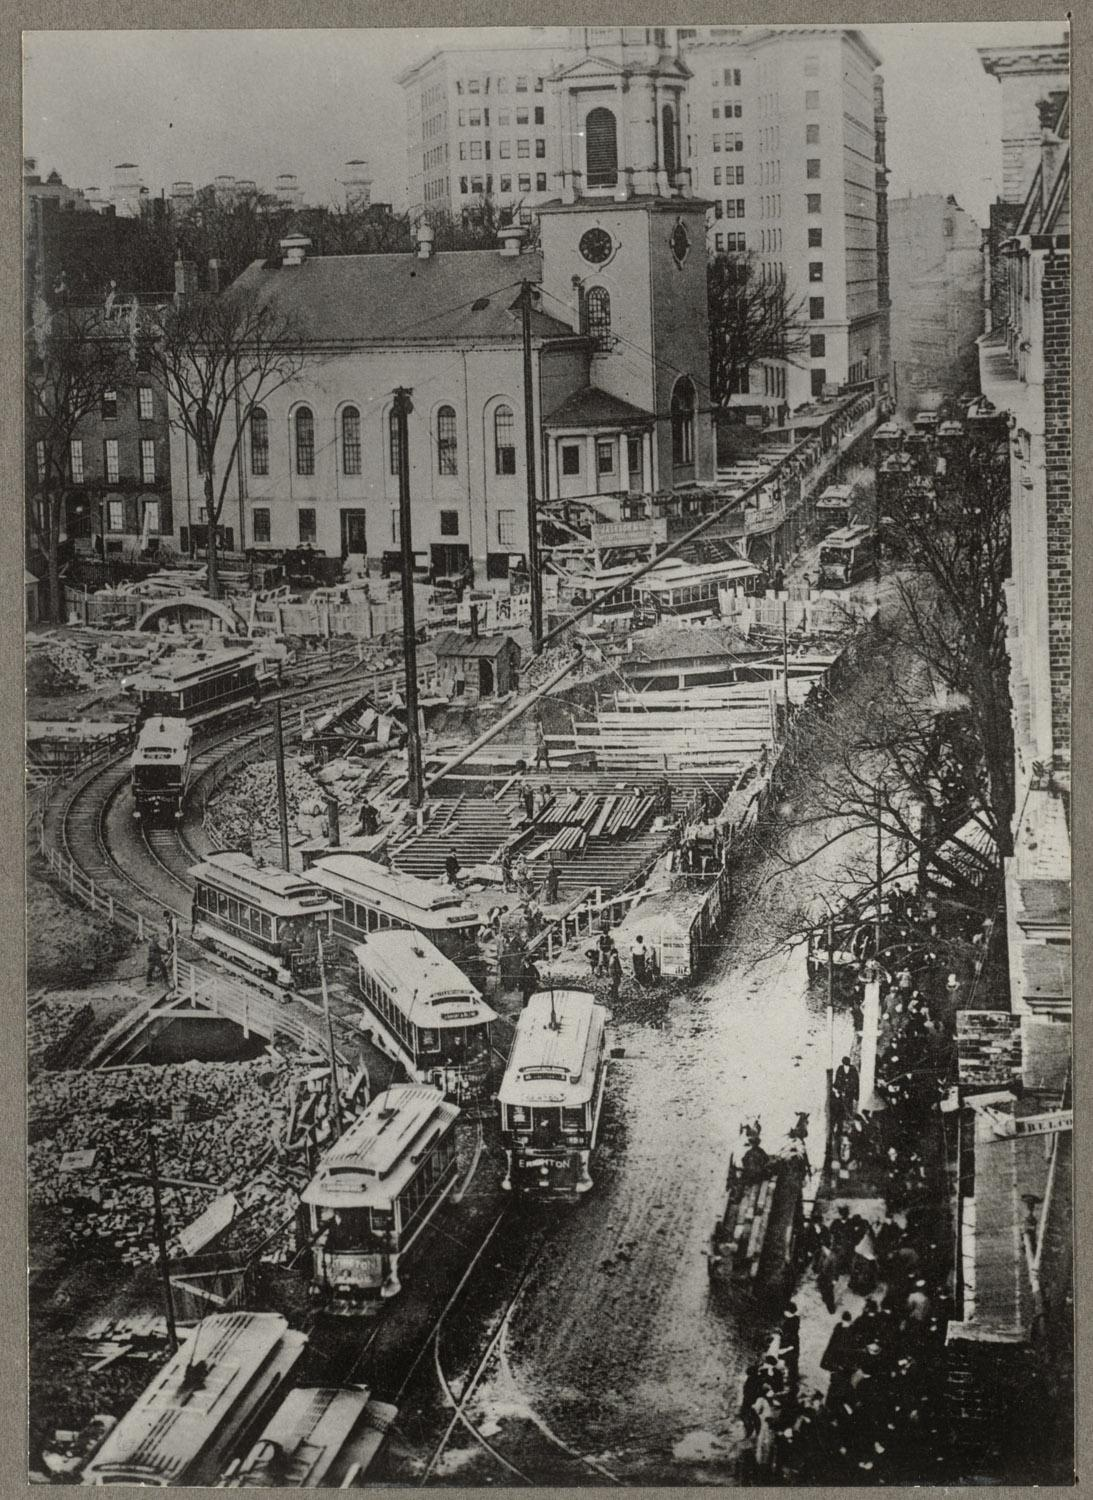 Park Street station construction in 1890s